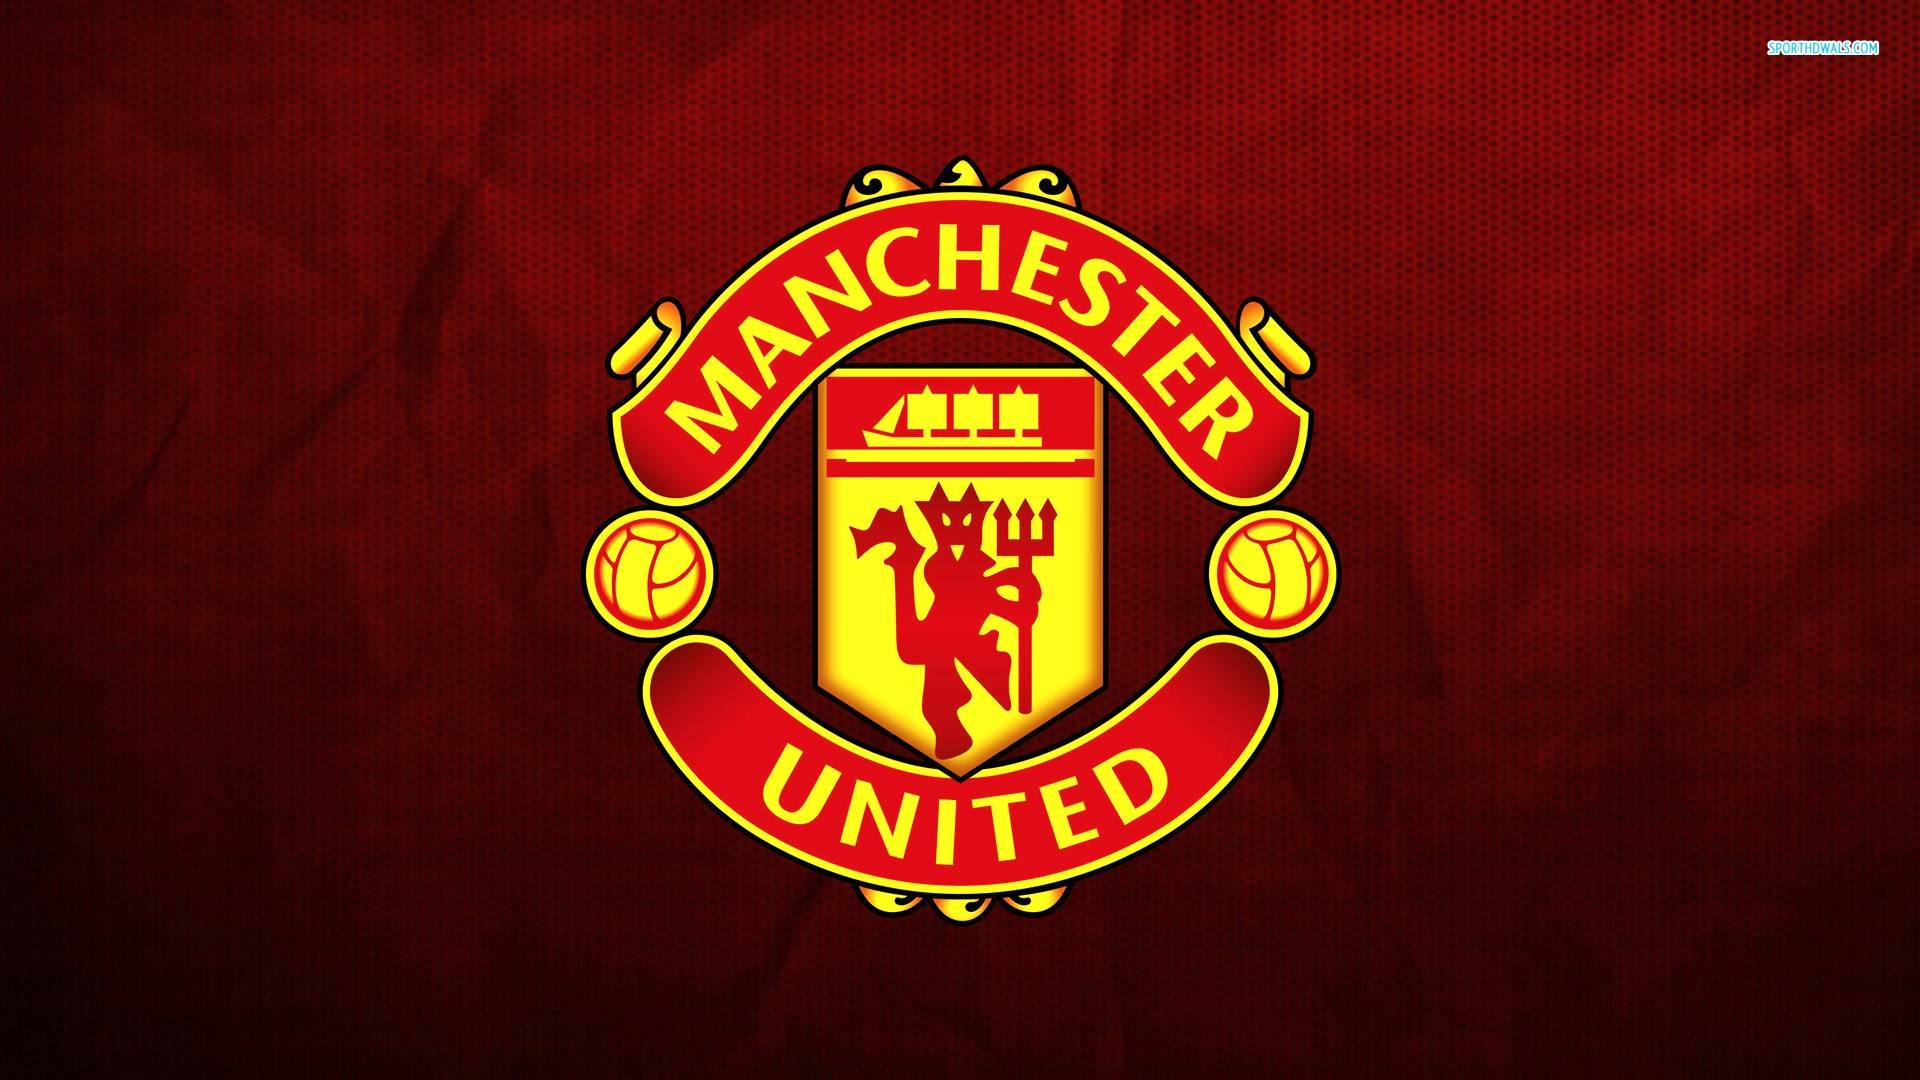 Best Of Manchester United Wallpaper Hd 2017 Great Foofball Club 1920x1080